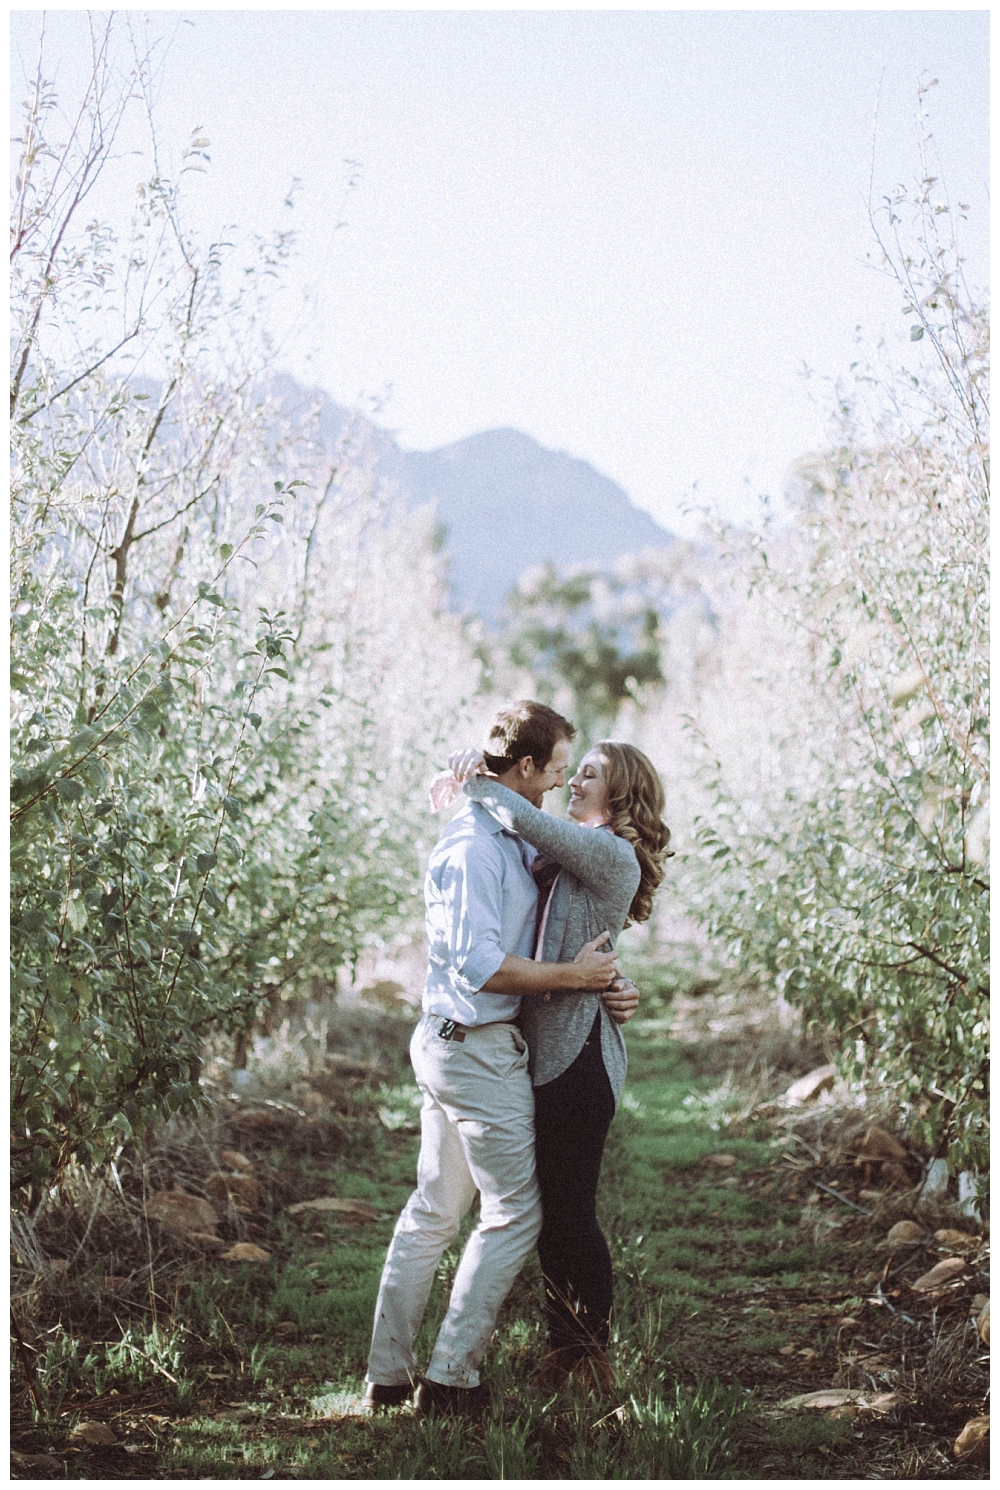 Ronel Kruger Cape Town Wedding and Lifestyle Photographer_3619.jpg